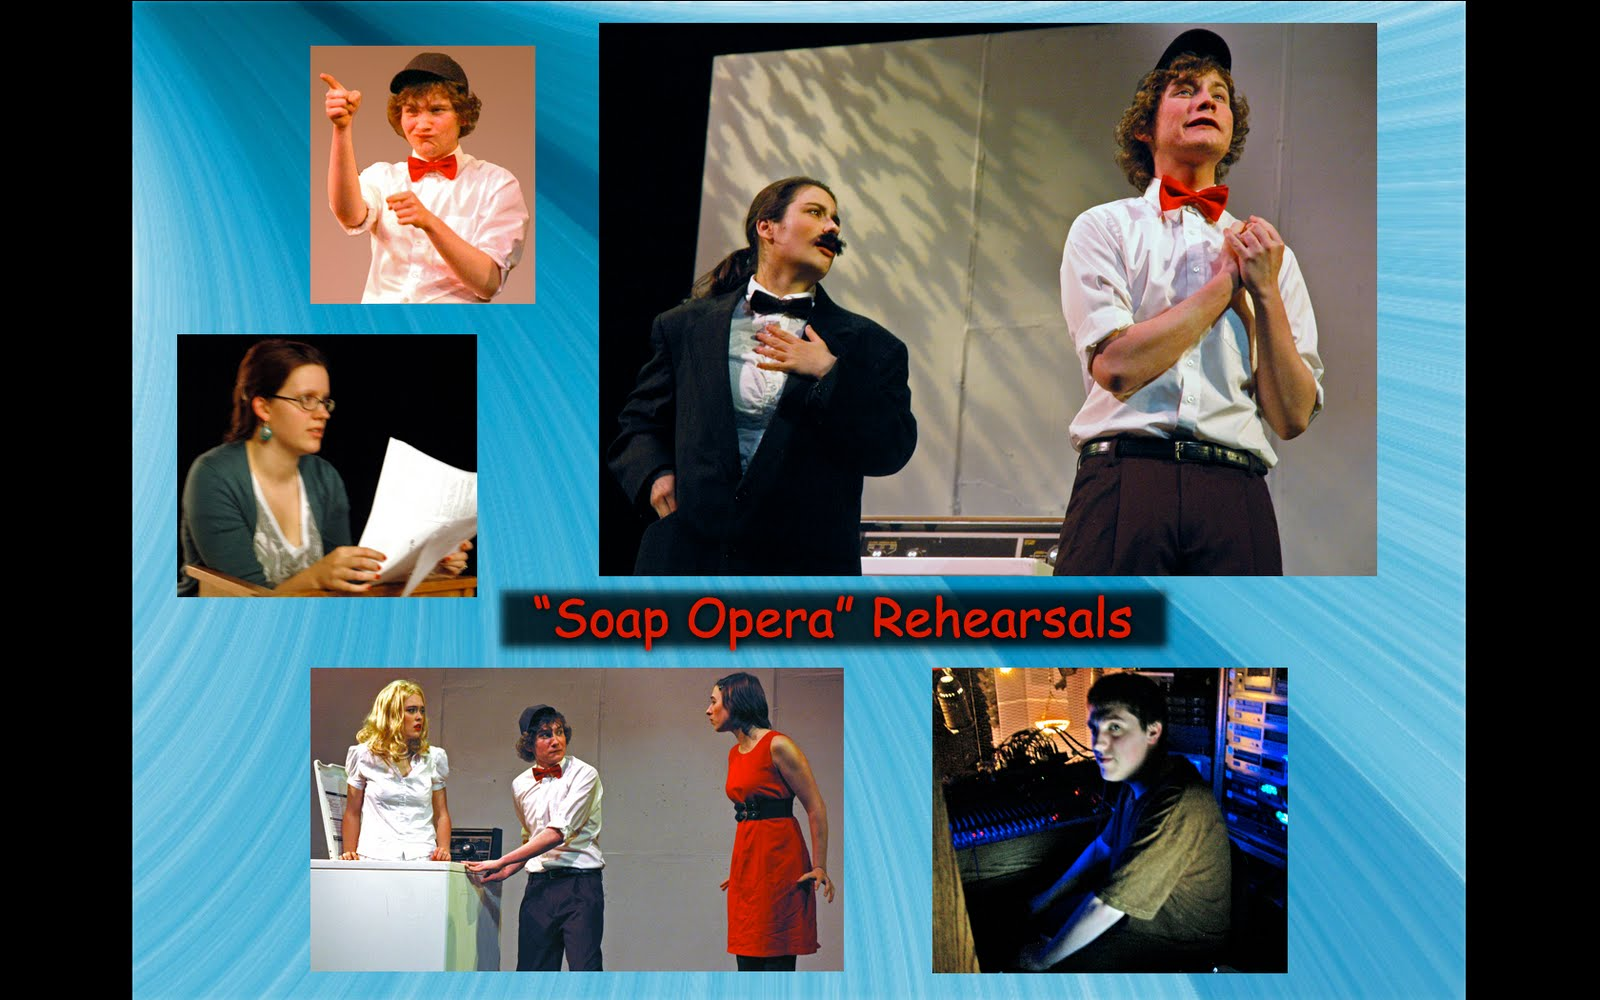 soap opera david ives Soap opera refers to radio or television dramas aired primarilyduring the morning and afternoon hours  what was the setting of the play soap opera by david ives.